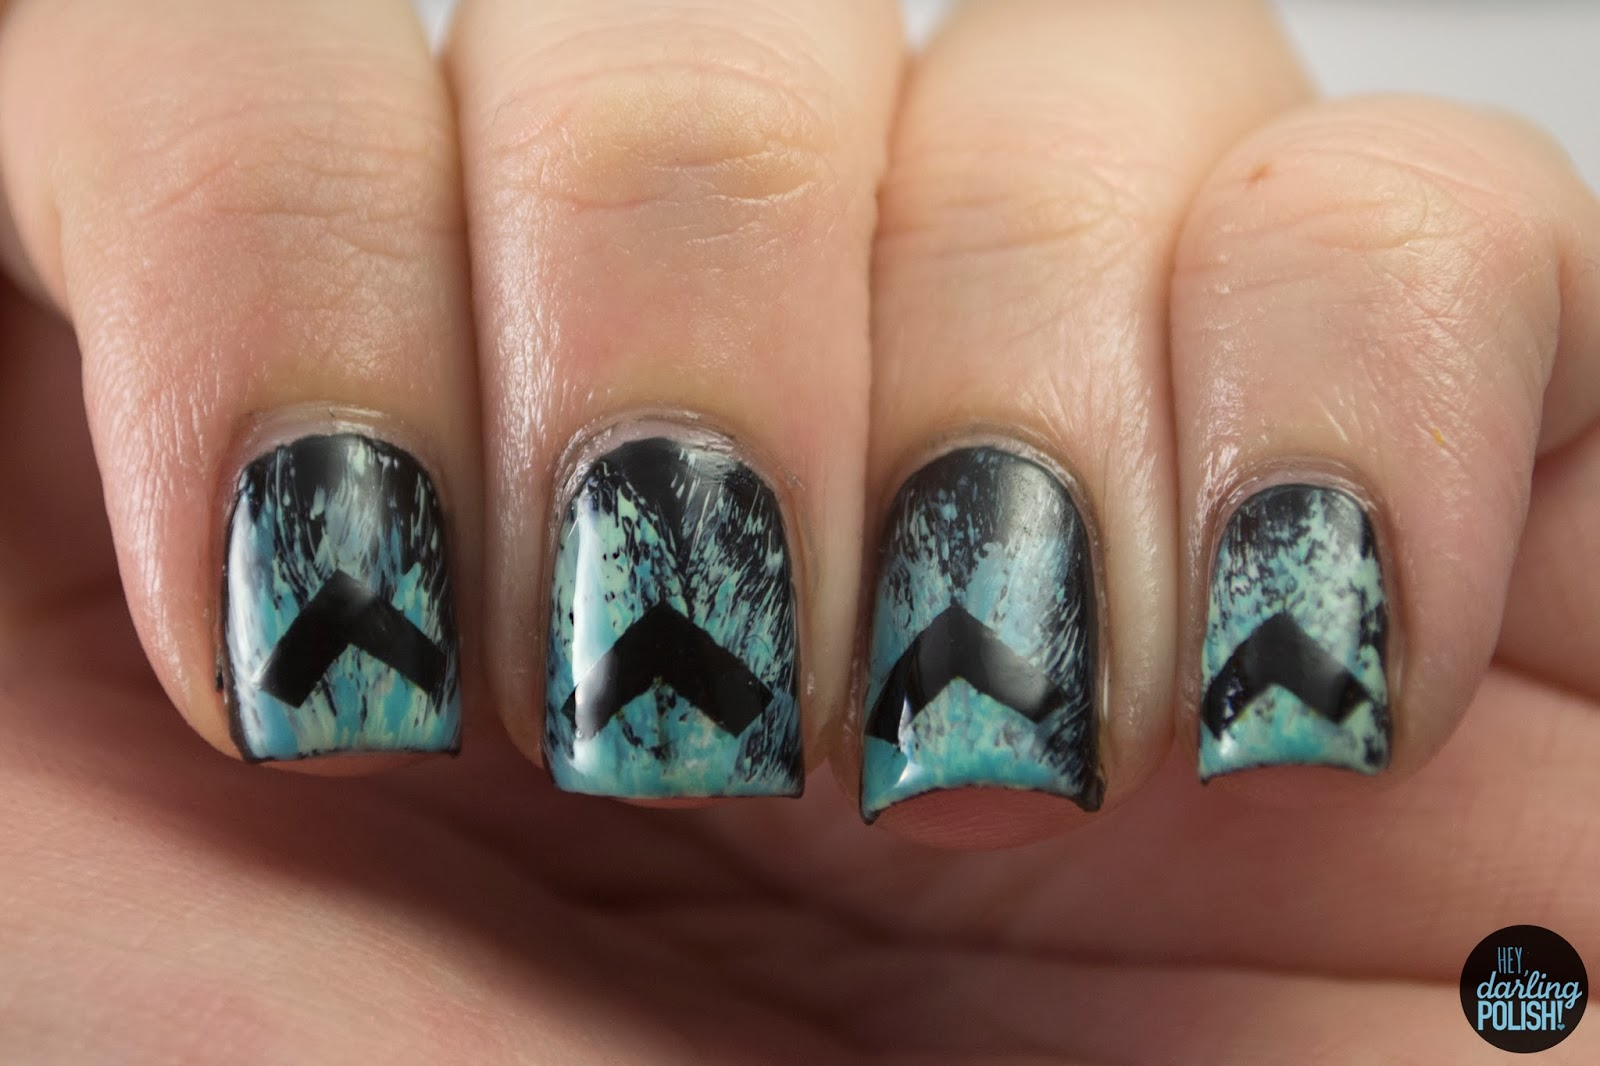 nails, nail art, nail polish, polish, the lonely forest, arrows, music monday, hey darling polish